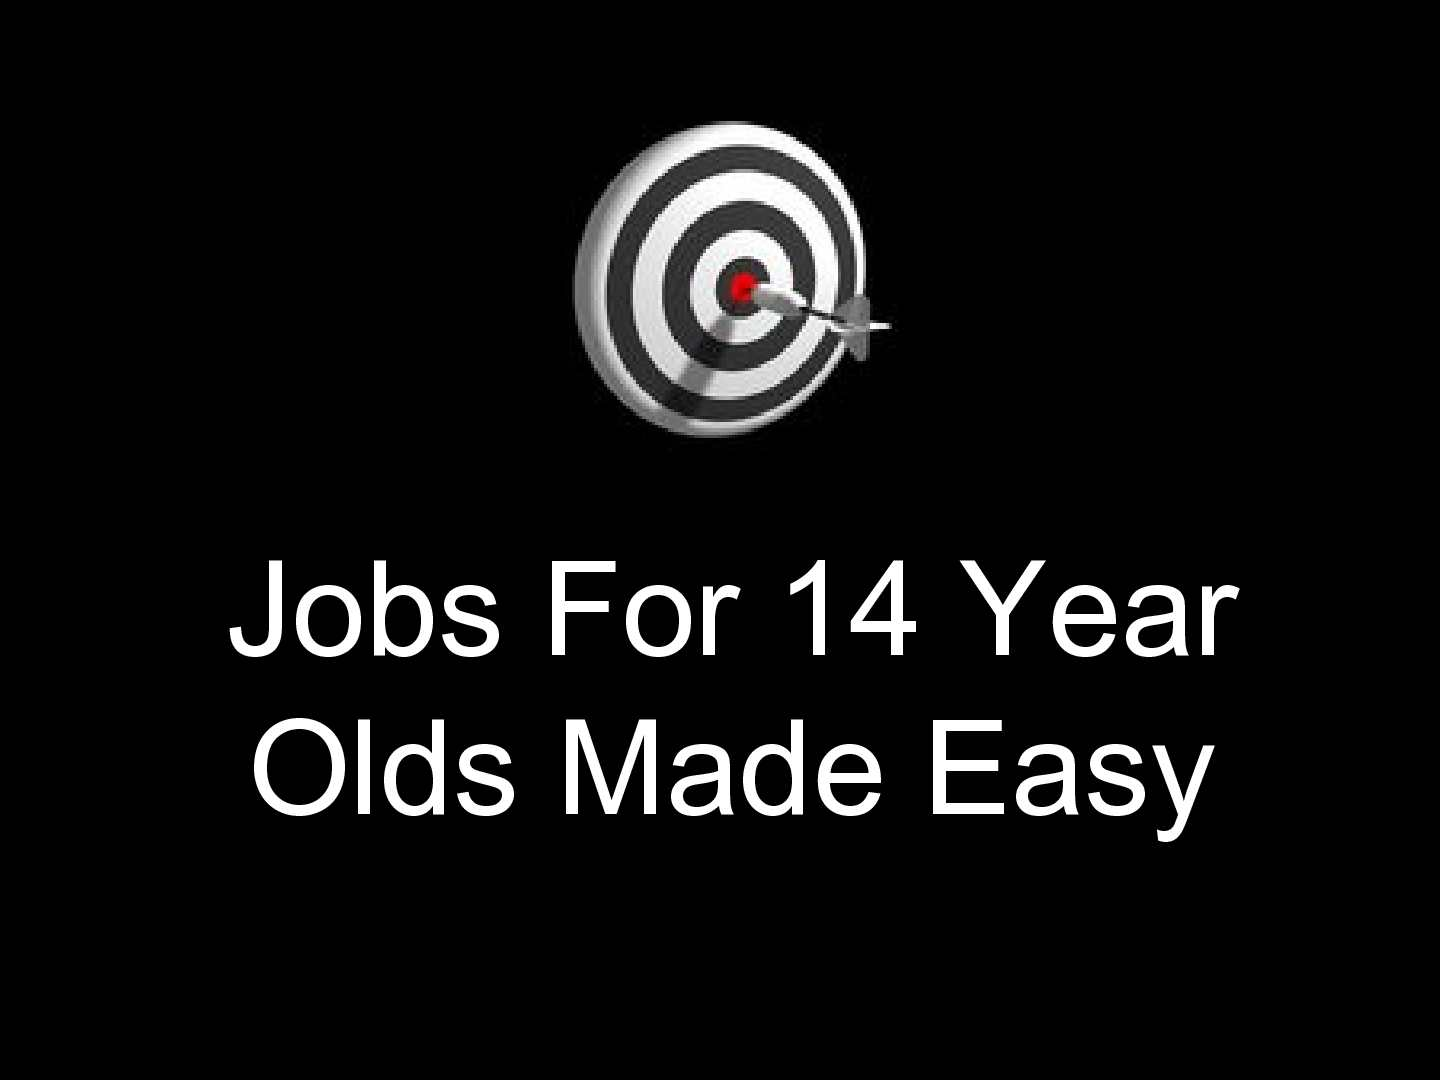 Calameo Jobs For 14 Year Olds Hiring Now Now Hiring Jobs For All Teens